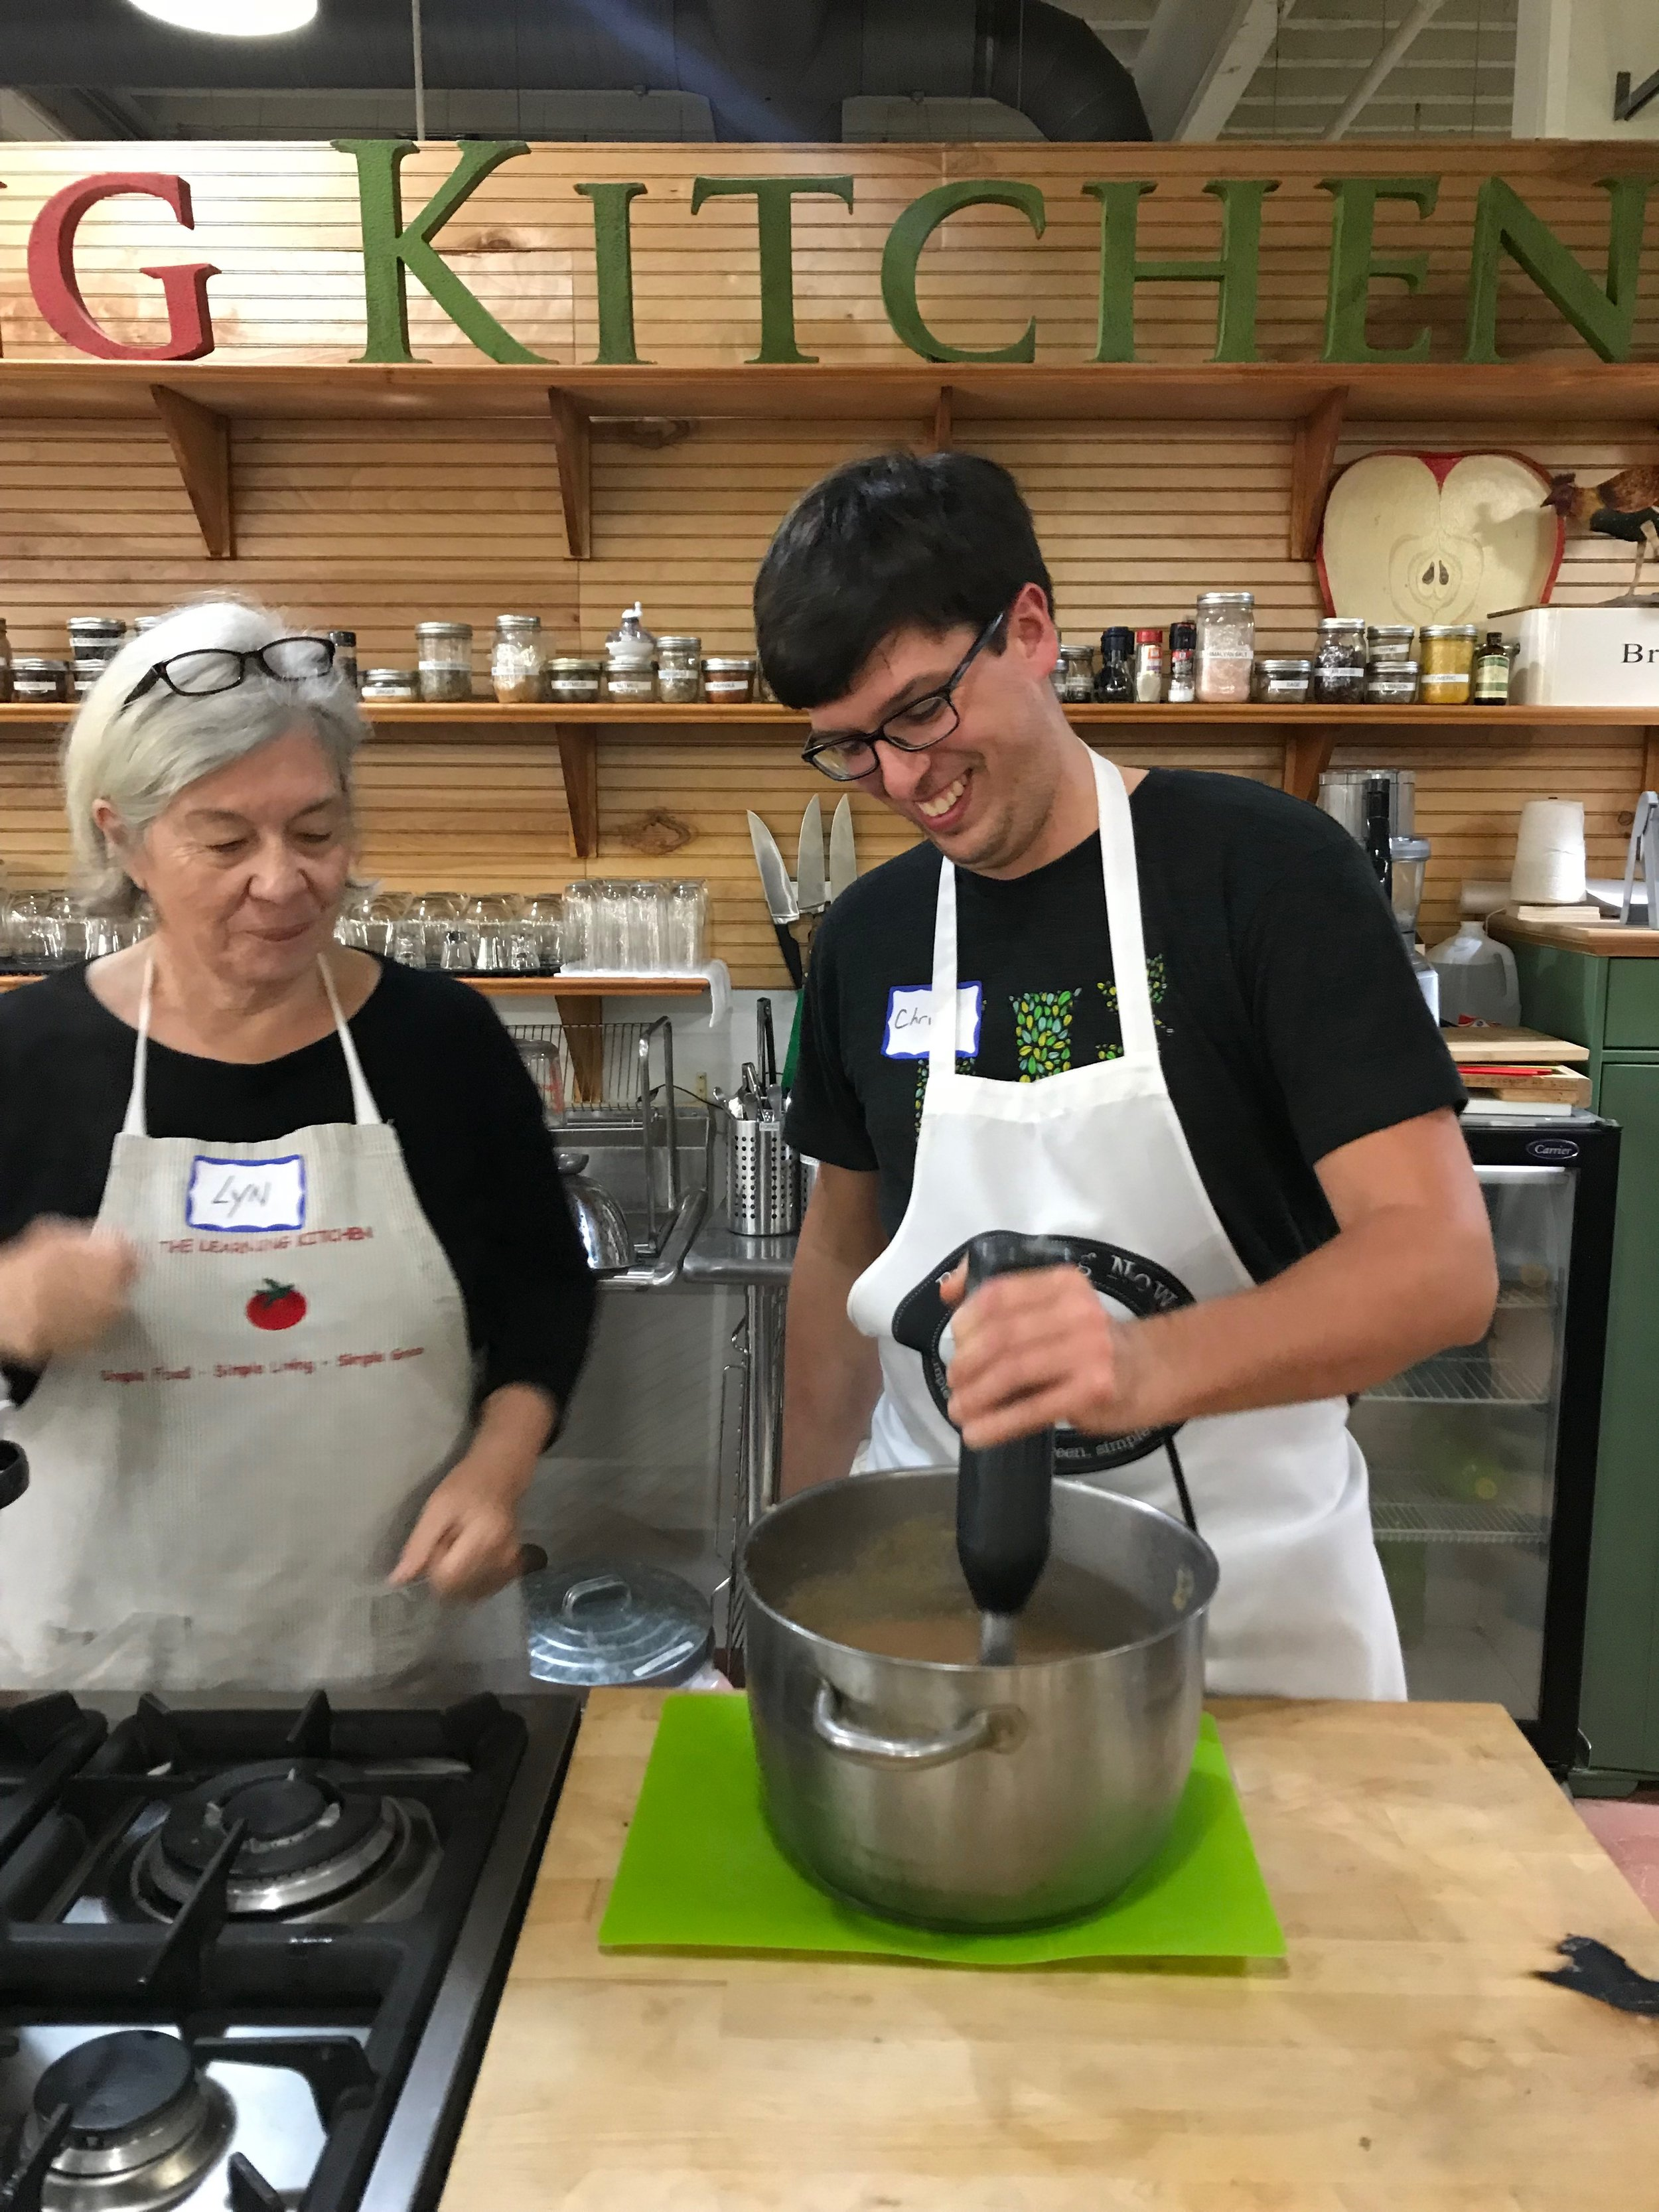 Chris is impressing all of us with his immersion blender skills.